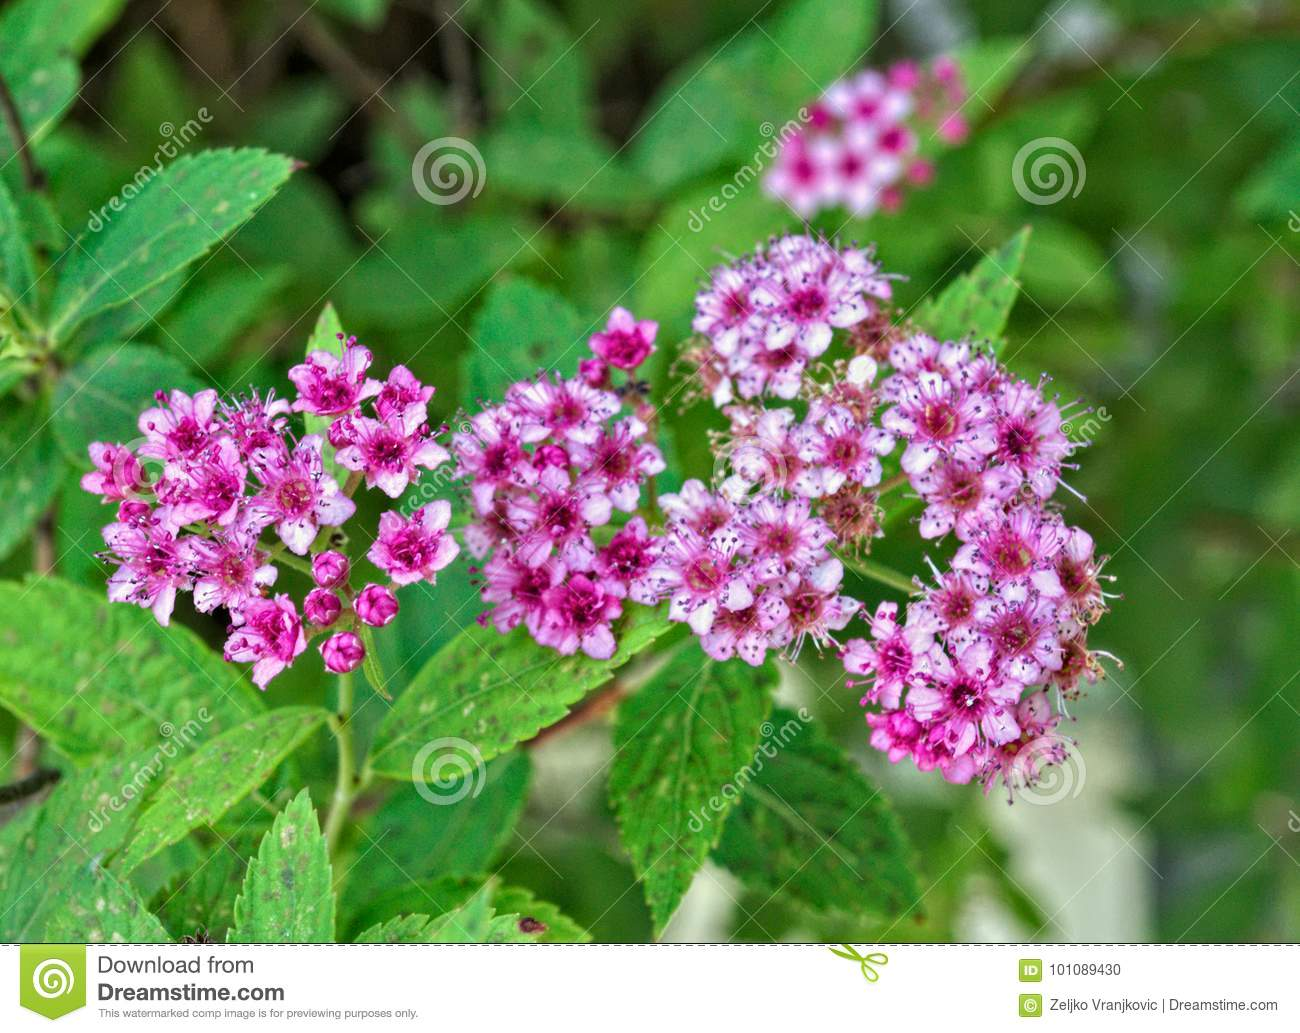 Plant Blooming With Small Pink Flowers Stock Photo Image Of Nature